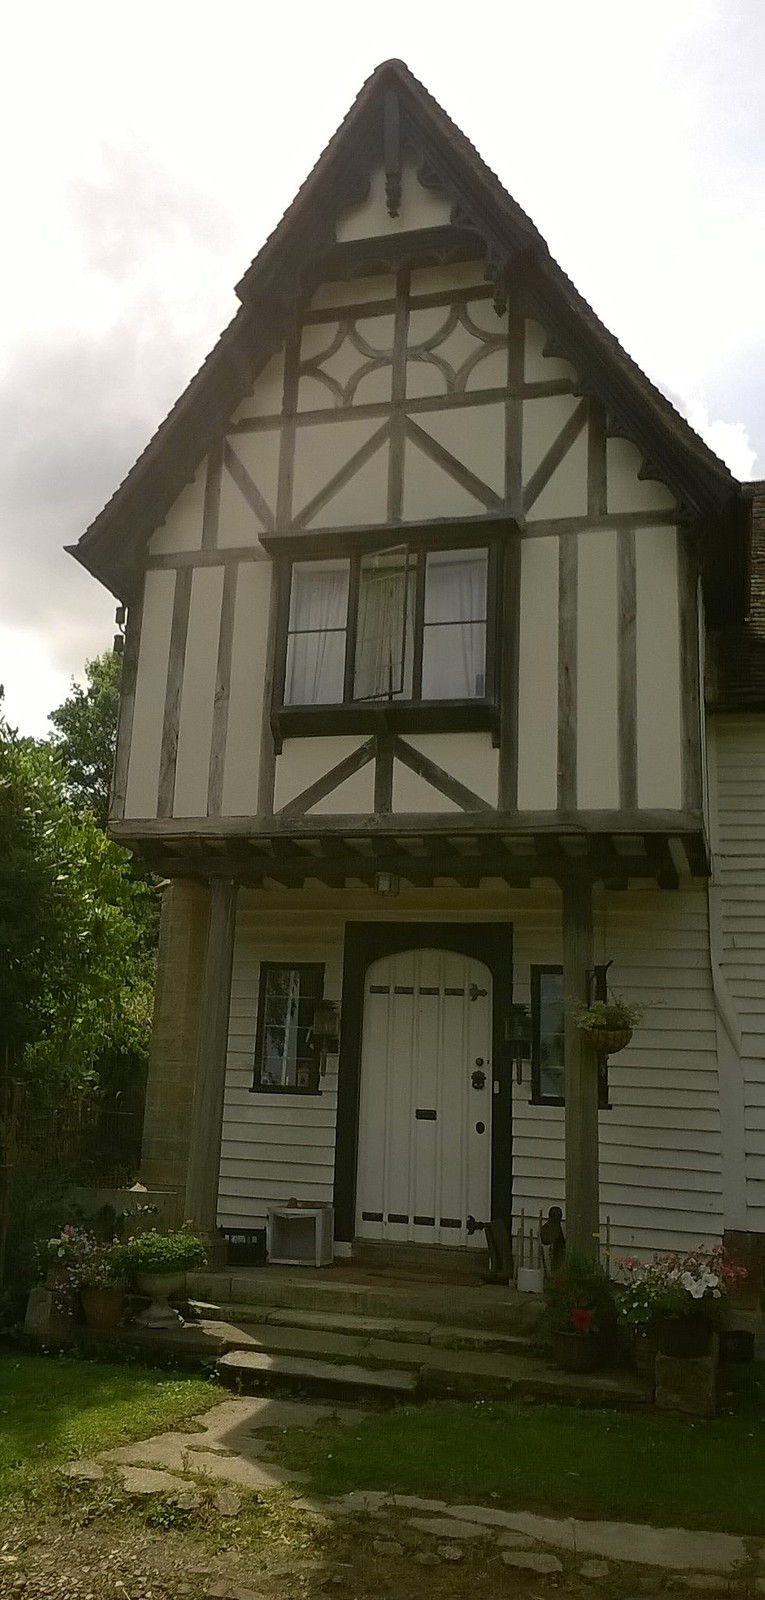 Timbered Kent building near Smarts Hill